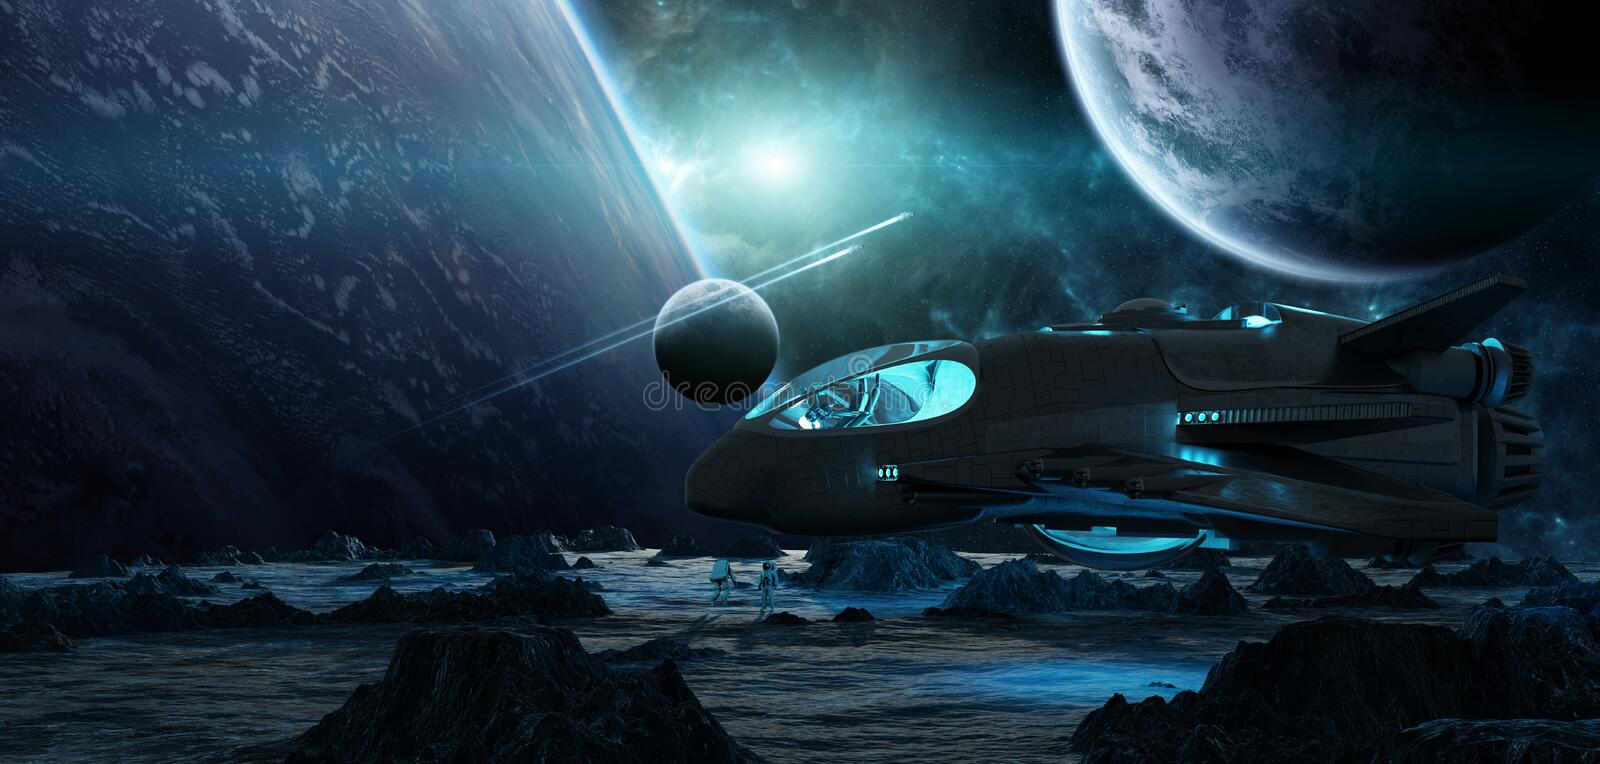 Astronauts exploring an asteroid 3D rendering elements of this i vector illustration